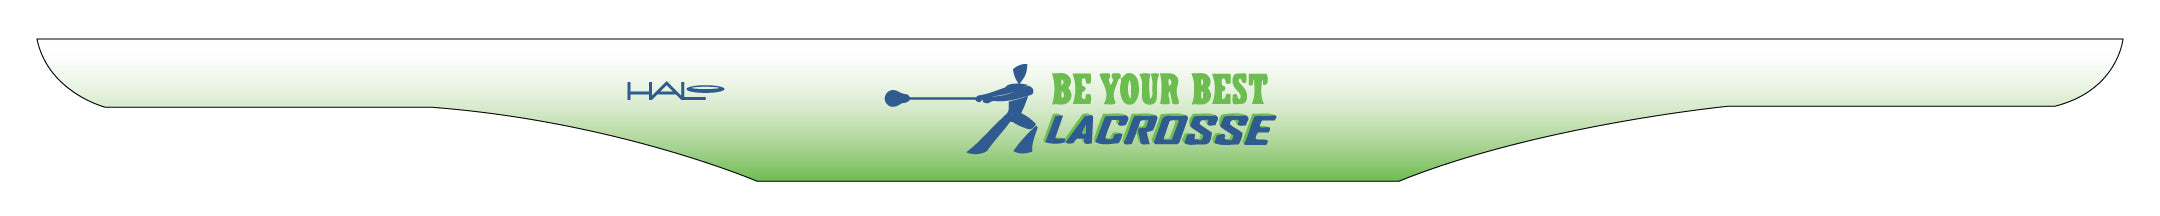 Halo Headbands - Be Your Best Lacrosse